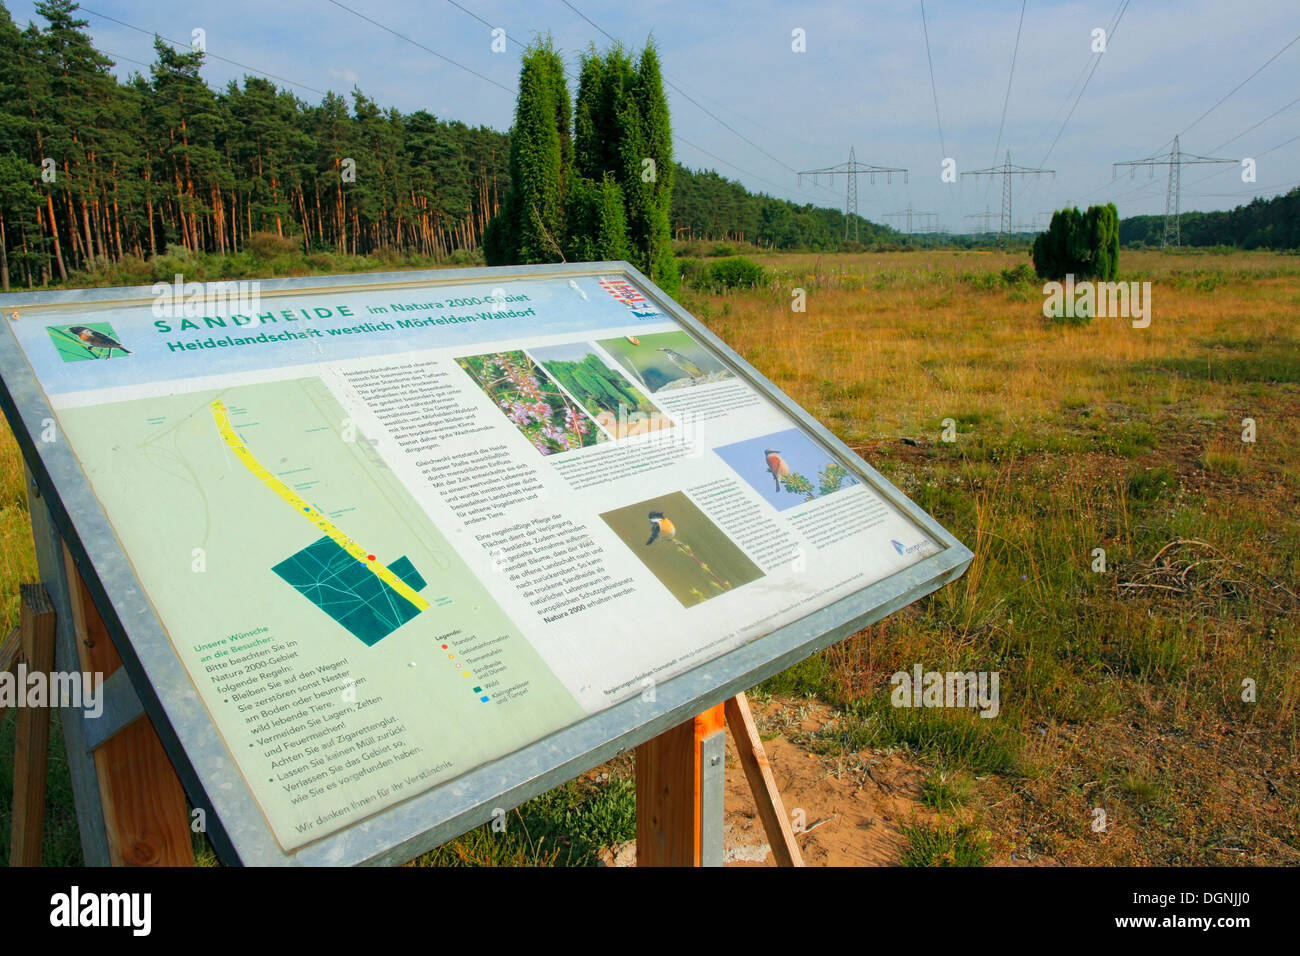 Information board for animal and plant life in the sand heath below high voltage transmission lines in the nature - Stock Image